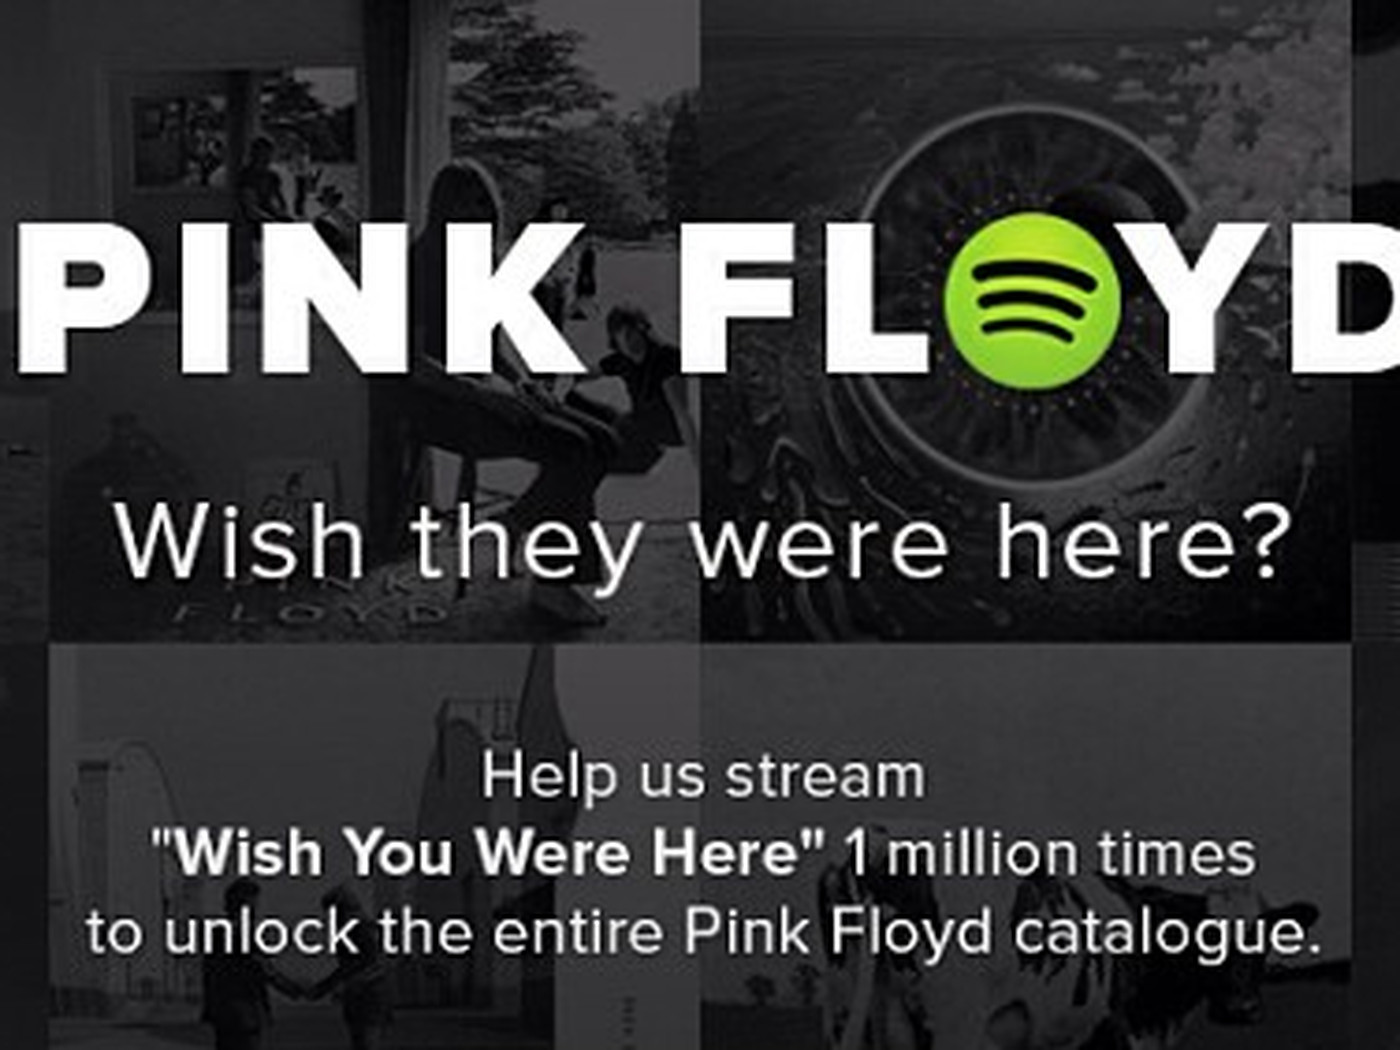 Spotify To Unlock Pink Floyds Entire Catalog Once Wish You Were Here Hits 1 Million Plays